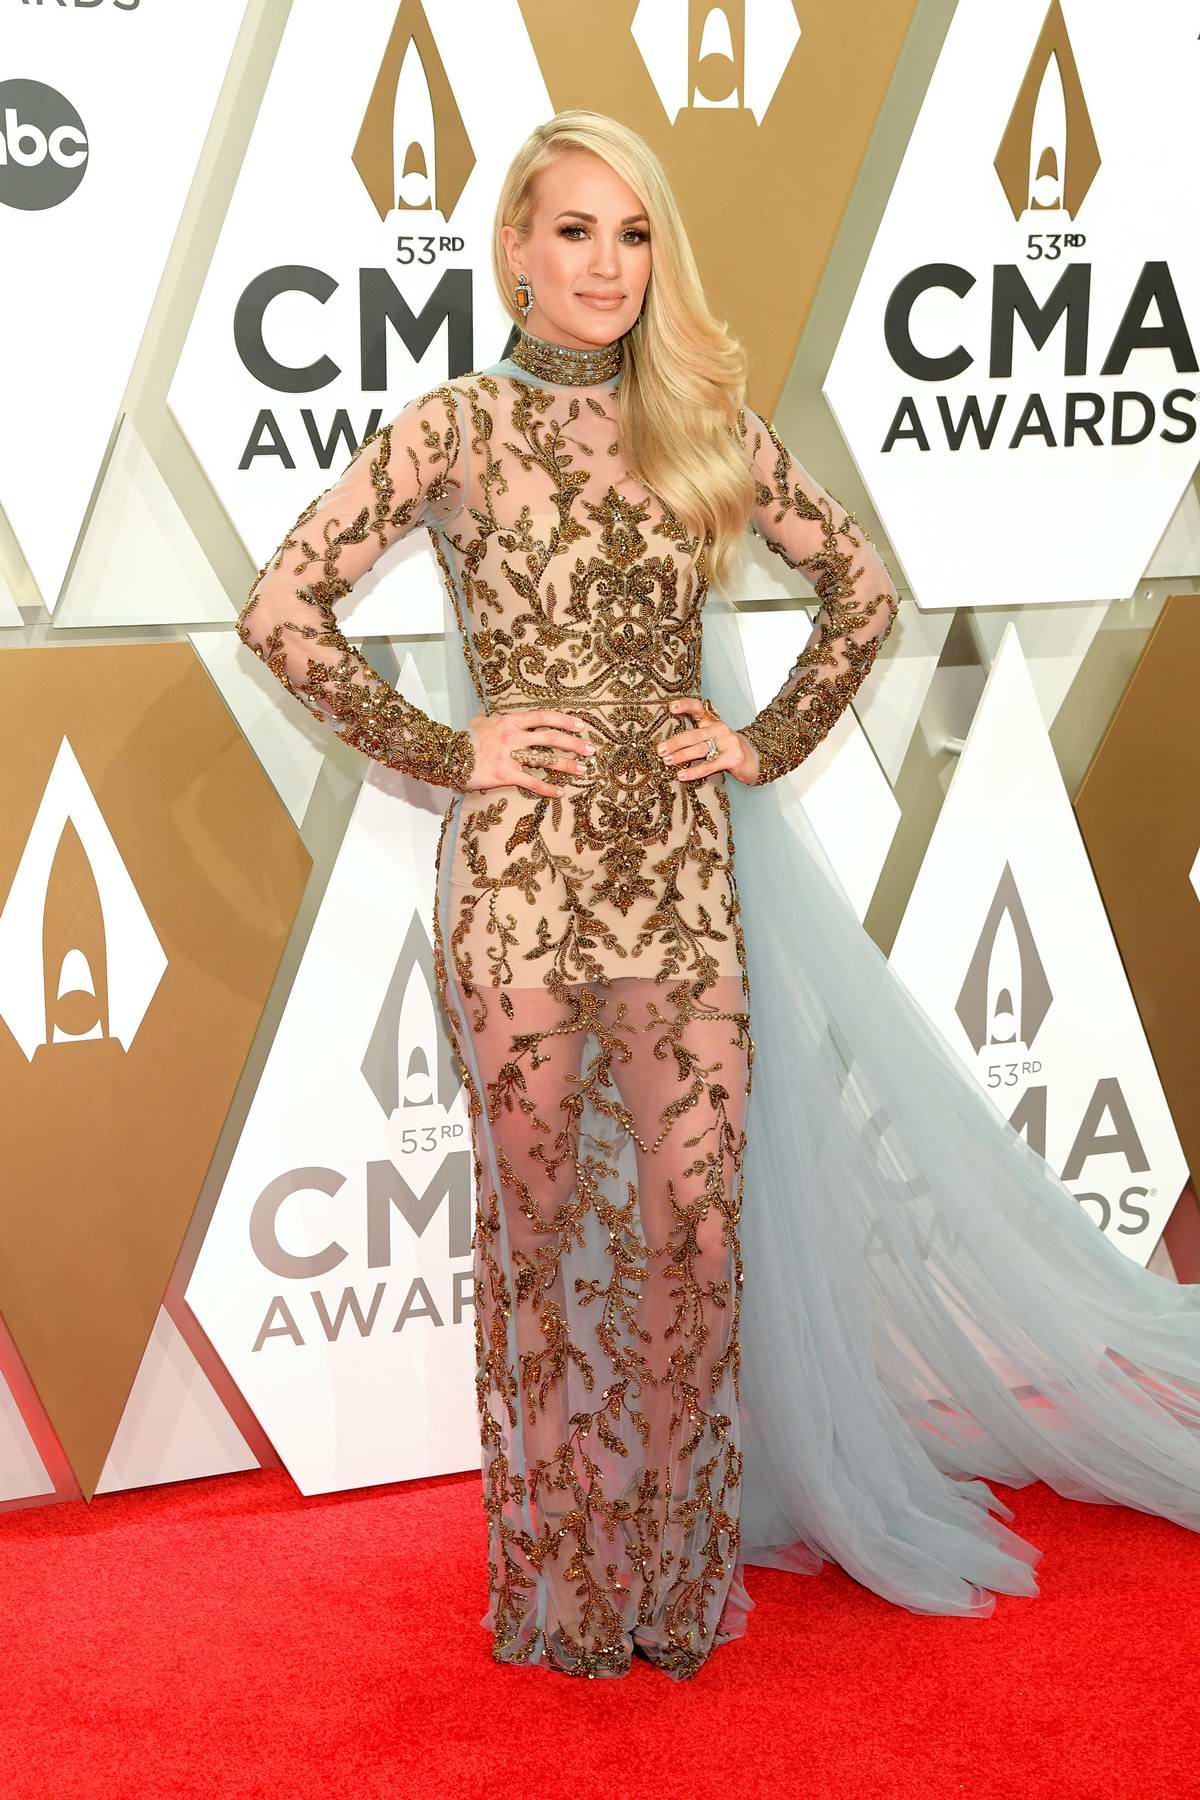 Carrie Underwood attends the 53rd annual CMA Awards at the Music City Center in Nashville, TN